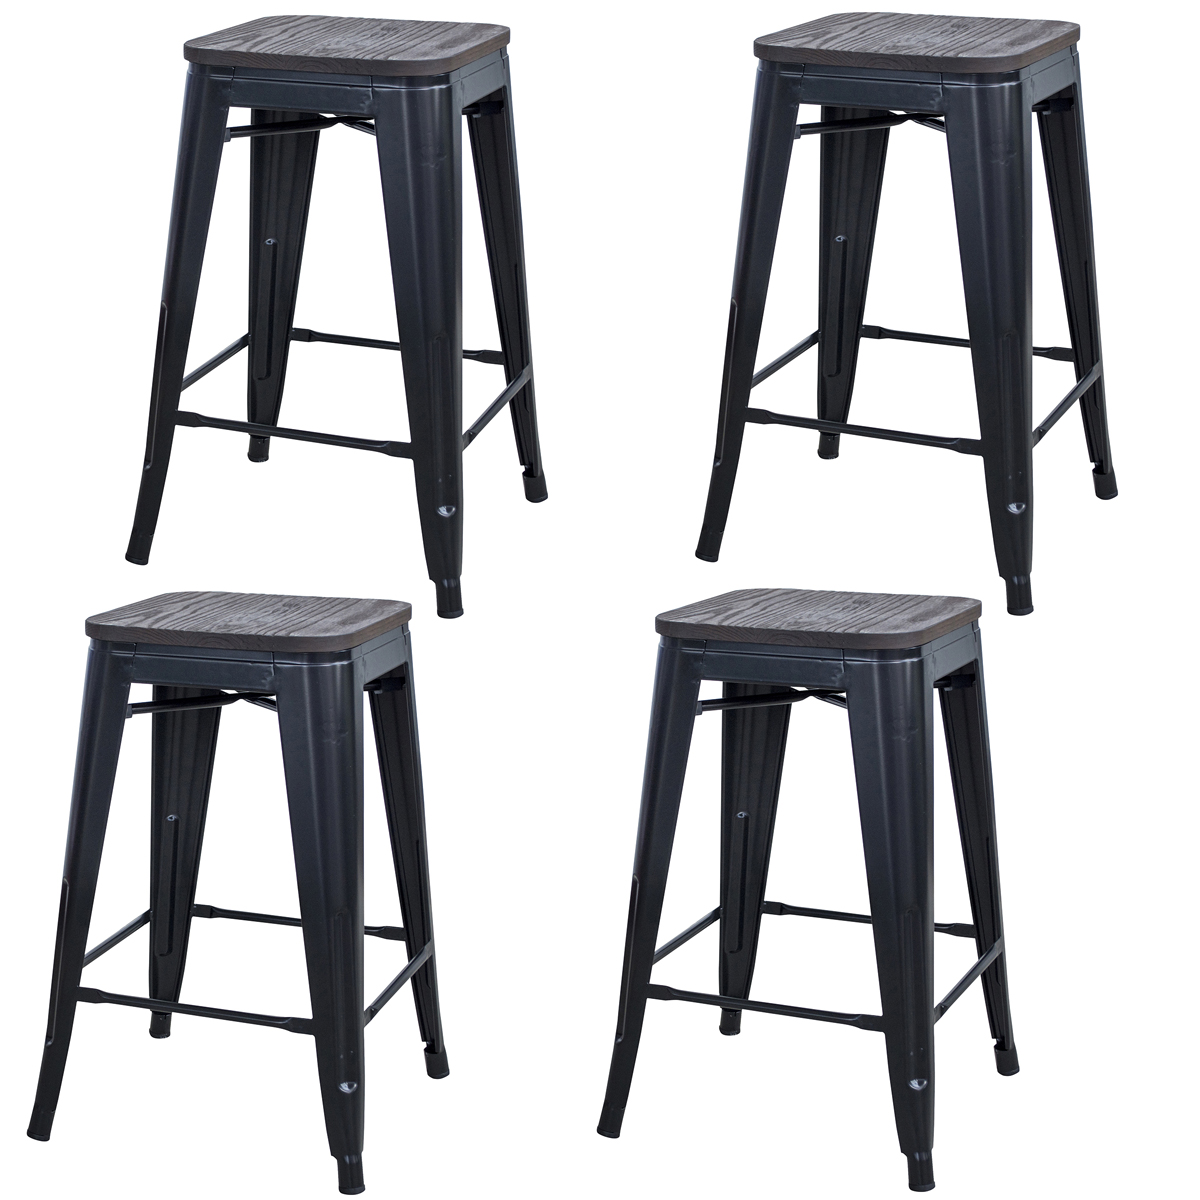 Rustic Gunmetal 24 in. Metal Bar Stool with Wood Seat- 4 Piece